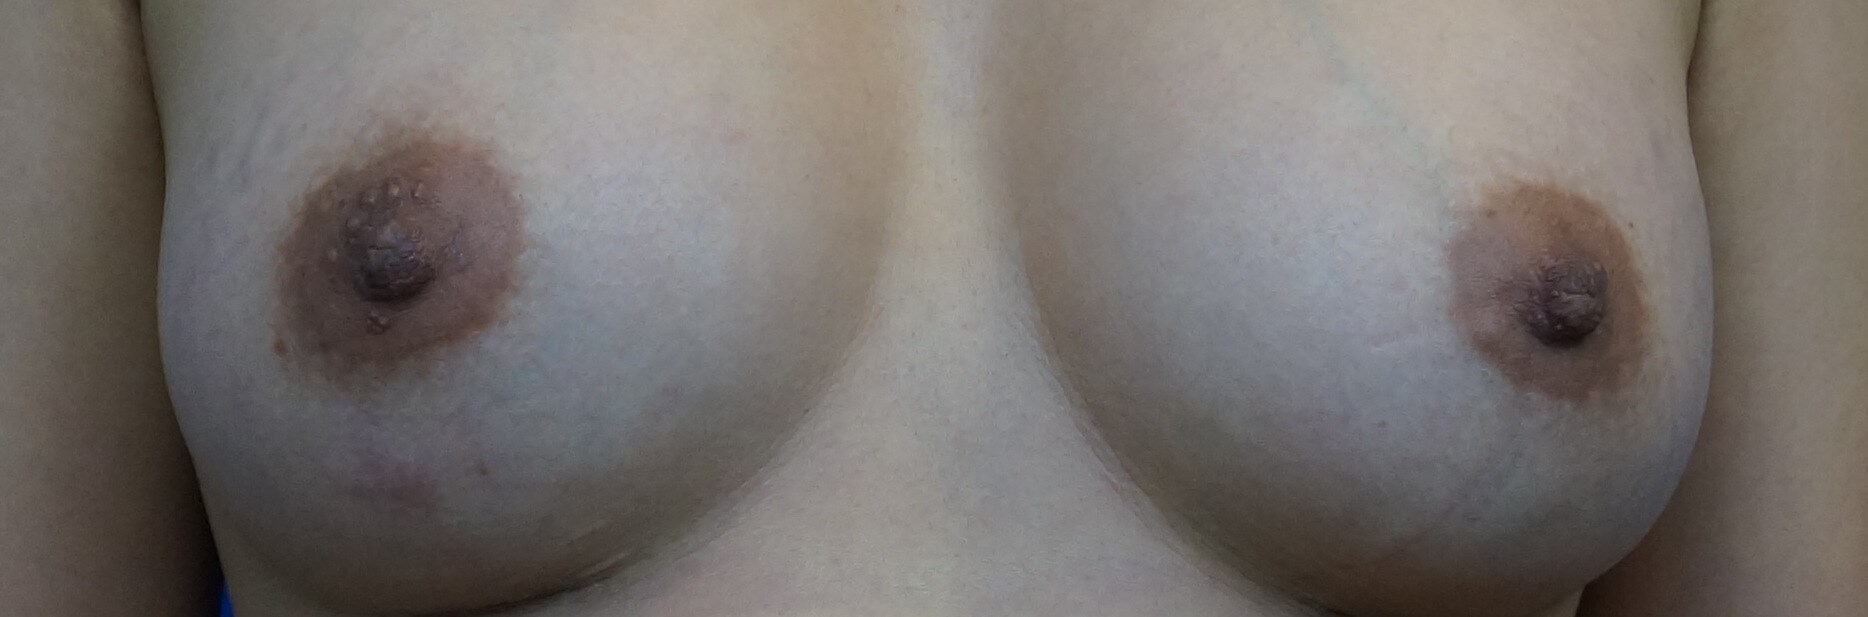 Nipple Reduction Surgery After